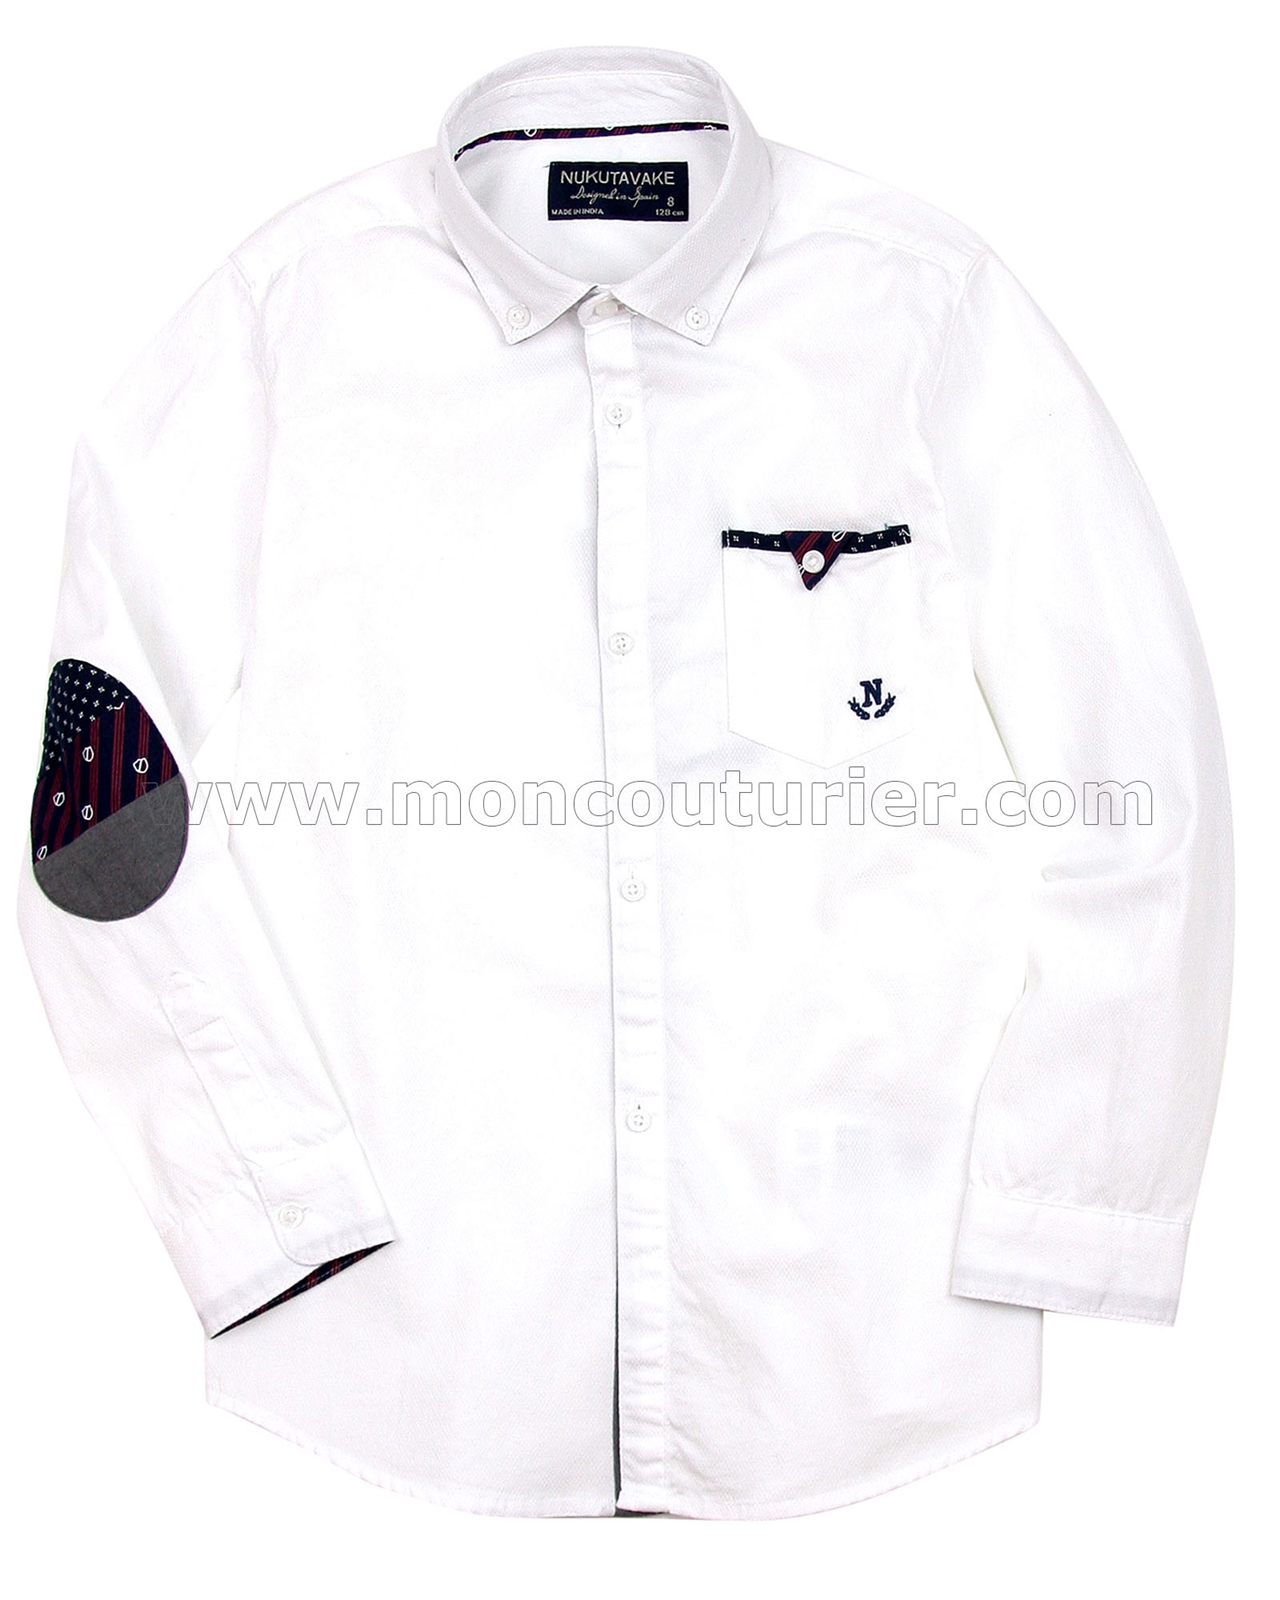 133120b1ea5e Mayoral Junior Boy s Shirt with Elbow Patches - Mayoral - Mayoral ...